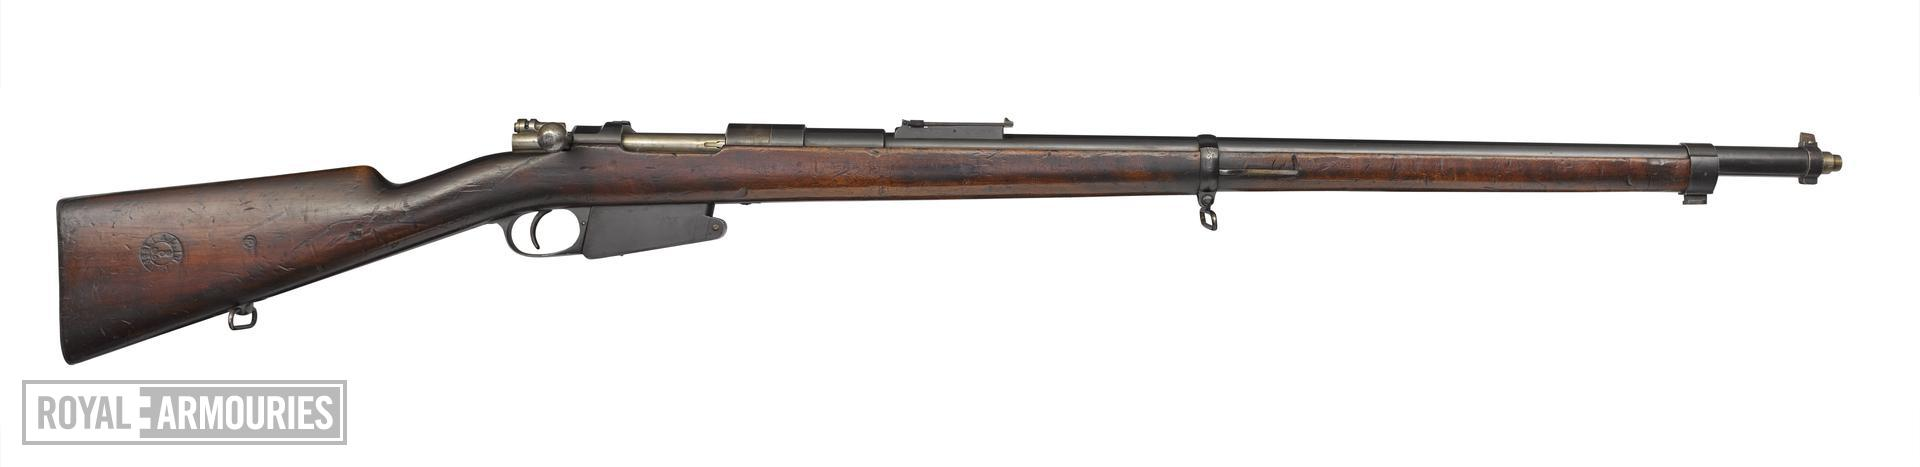 Mauser Model  1889 centrefire bolt action rifle, Liege, Belgium, about 1889 , by Fabrique Nationale